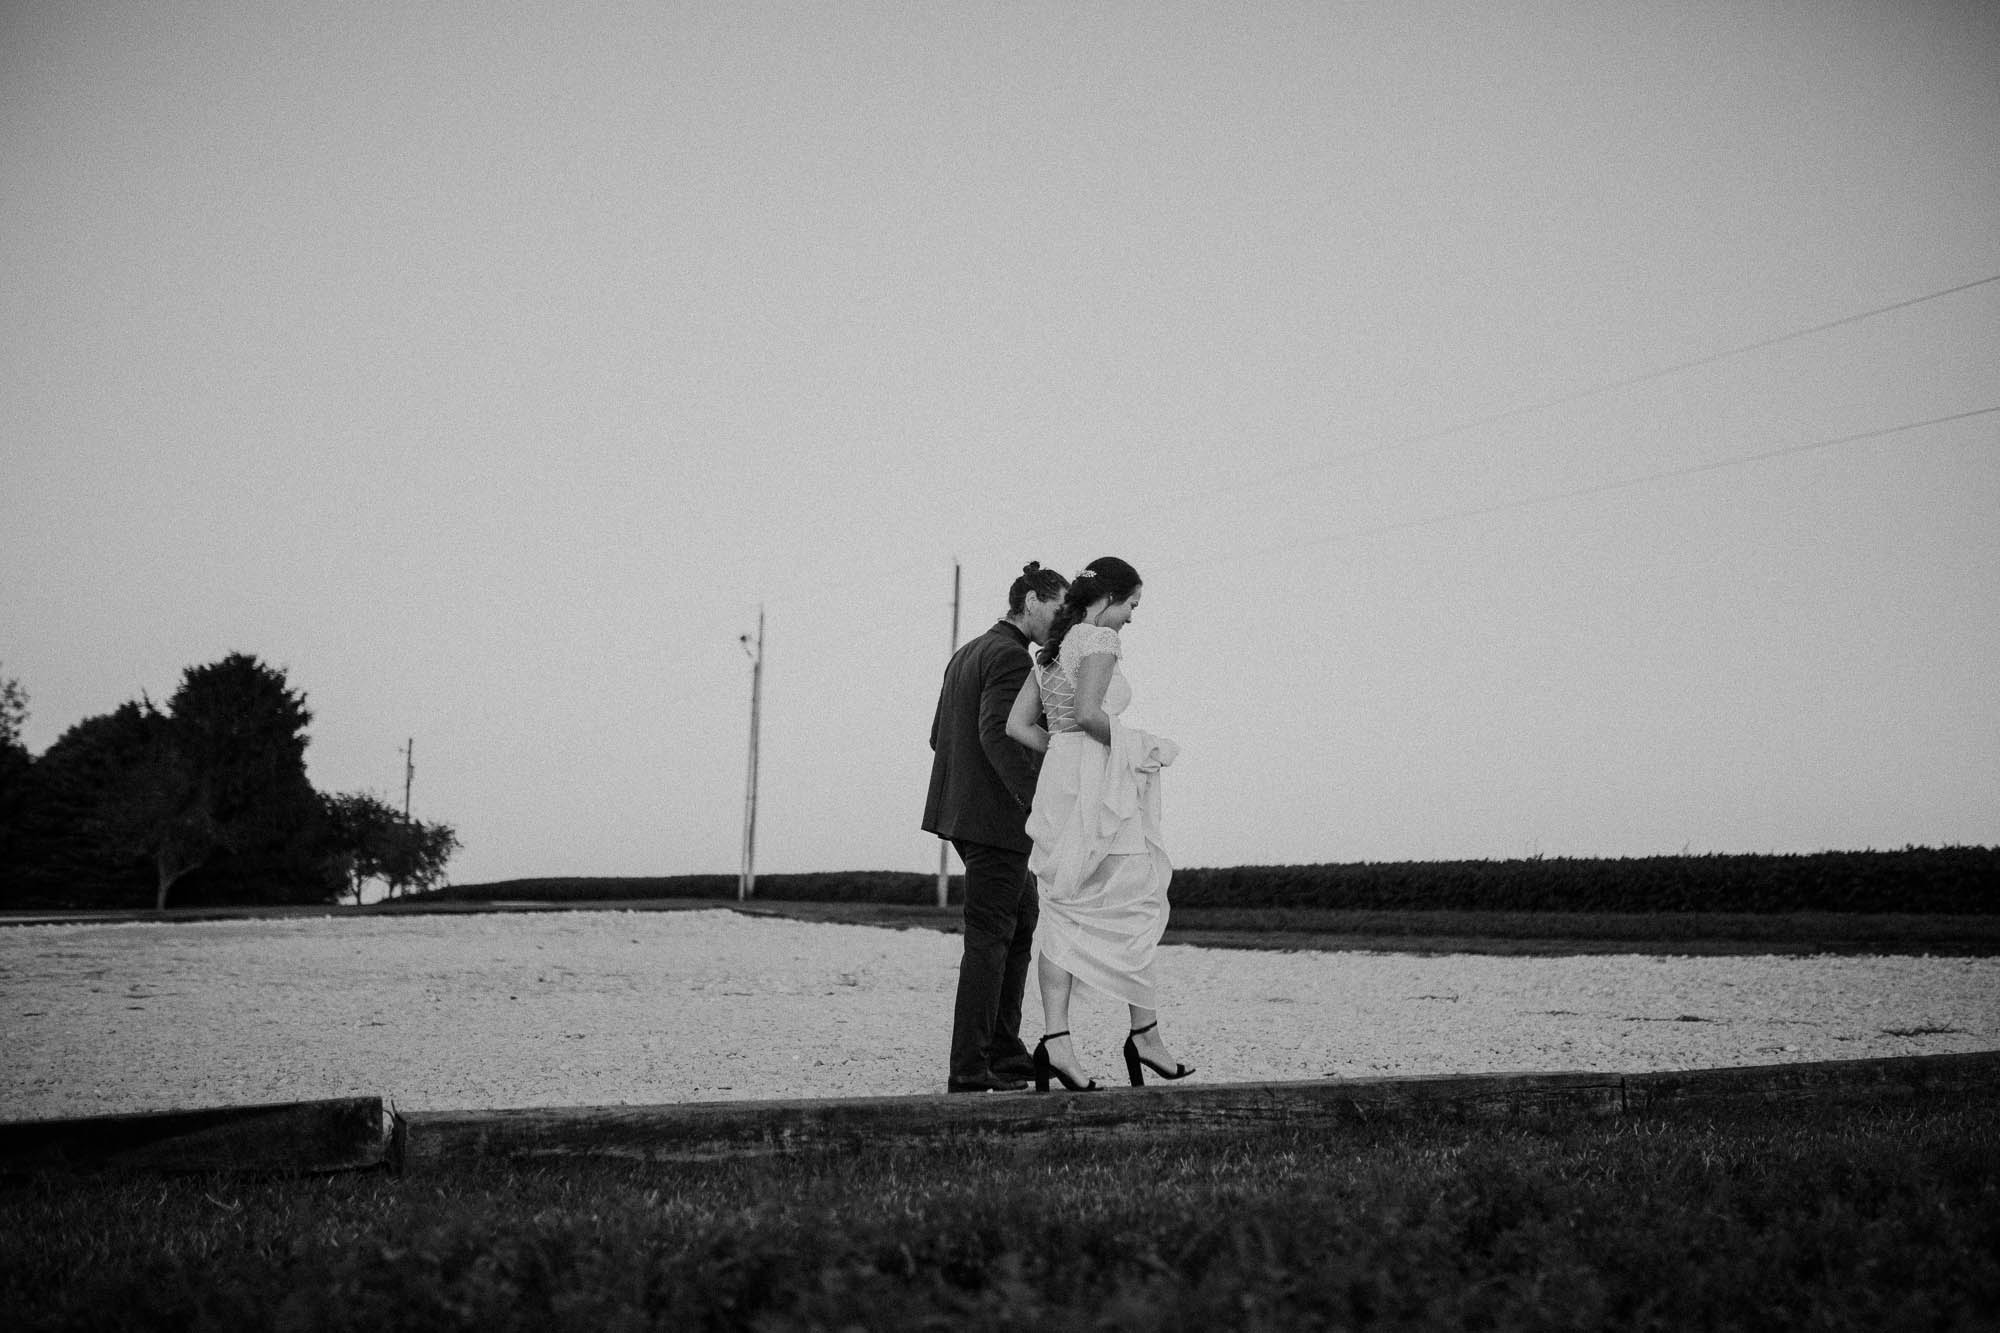 champaign_il_wedding_photography-0293.jpg